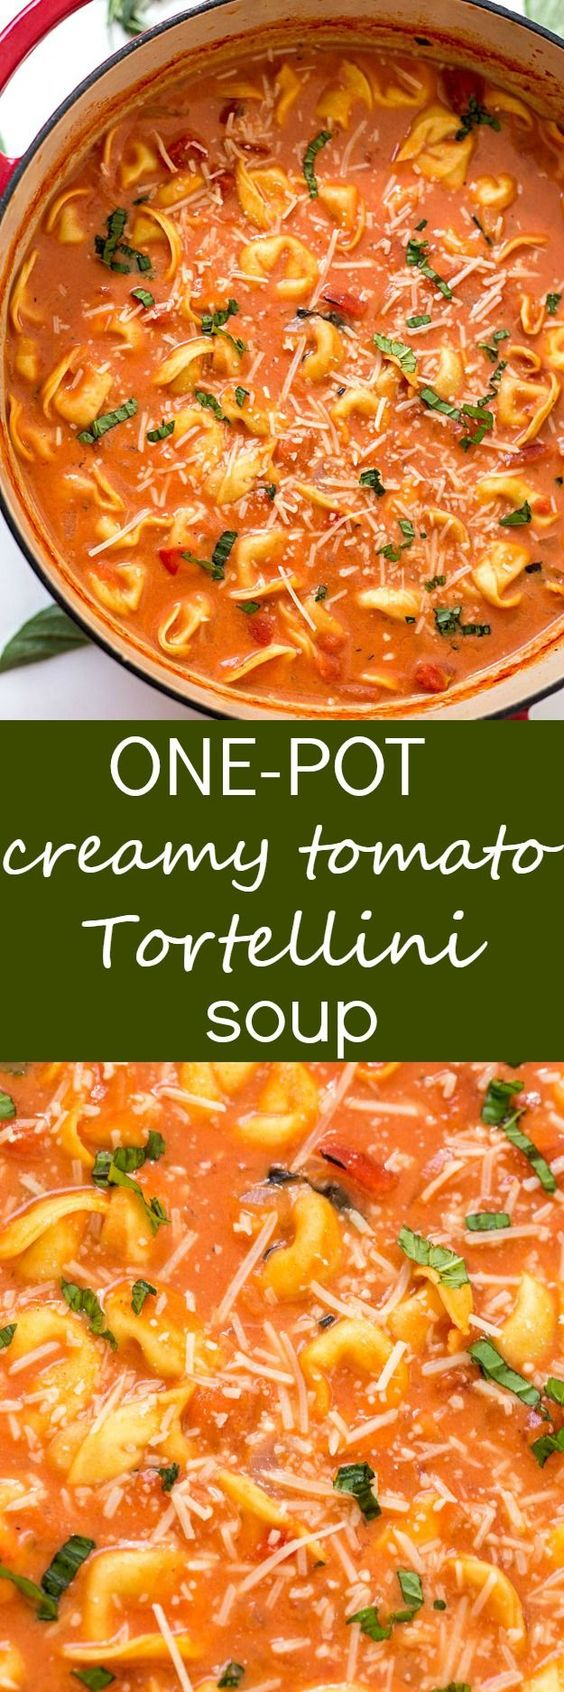 One-Pot Creamy Tomato Tortellini Soup Recipe | Gal on a Mission - The BEST Homemade Soups Recipes - Easy, Quick and Yummy Lunch and Dinner Family Favorites Meals Ideas #soup #souprecipes #homemadesoup #soups #easysouprecipes #easyrecipes #lunchrecipes #fallrecipes #winterrecipes